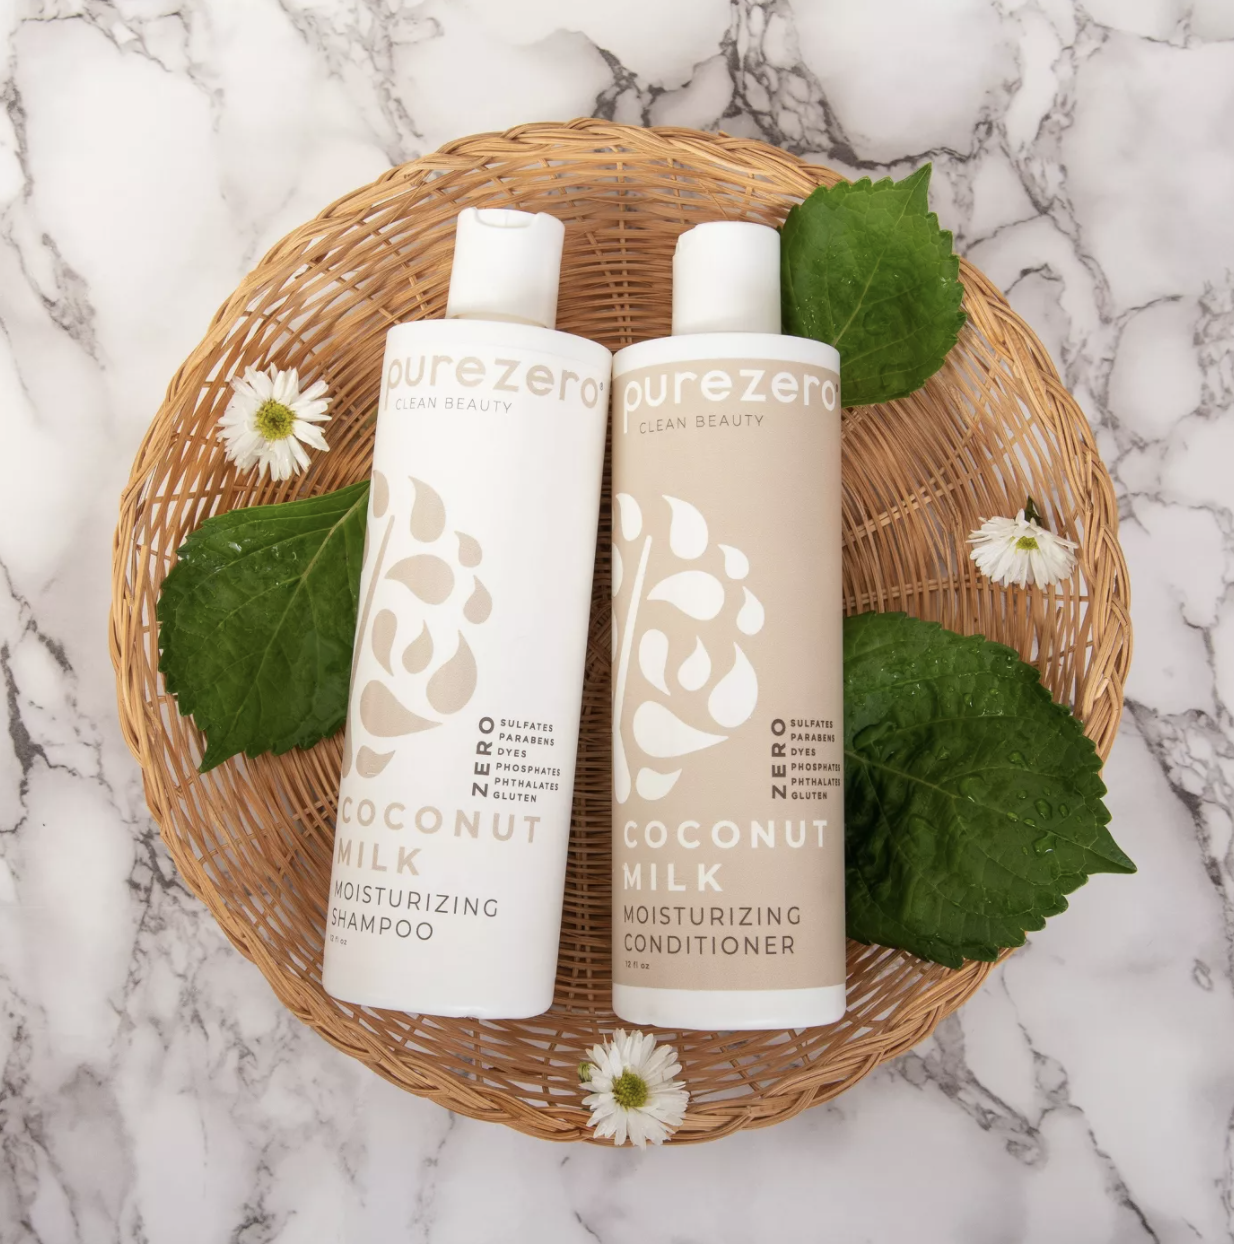 the moisturizing shampoo and conditioner bottles in a basket